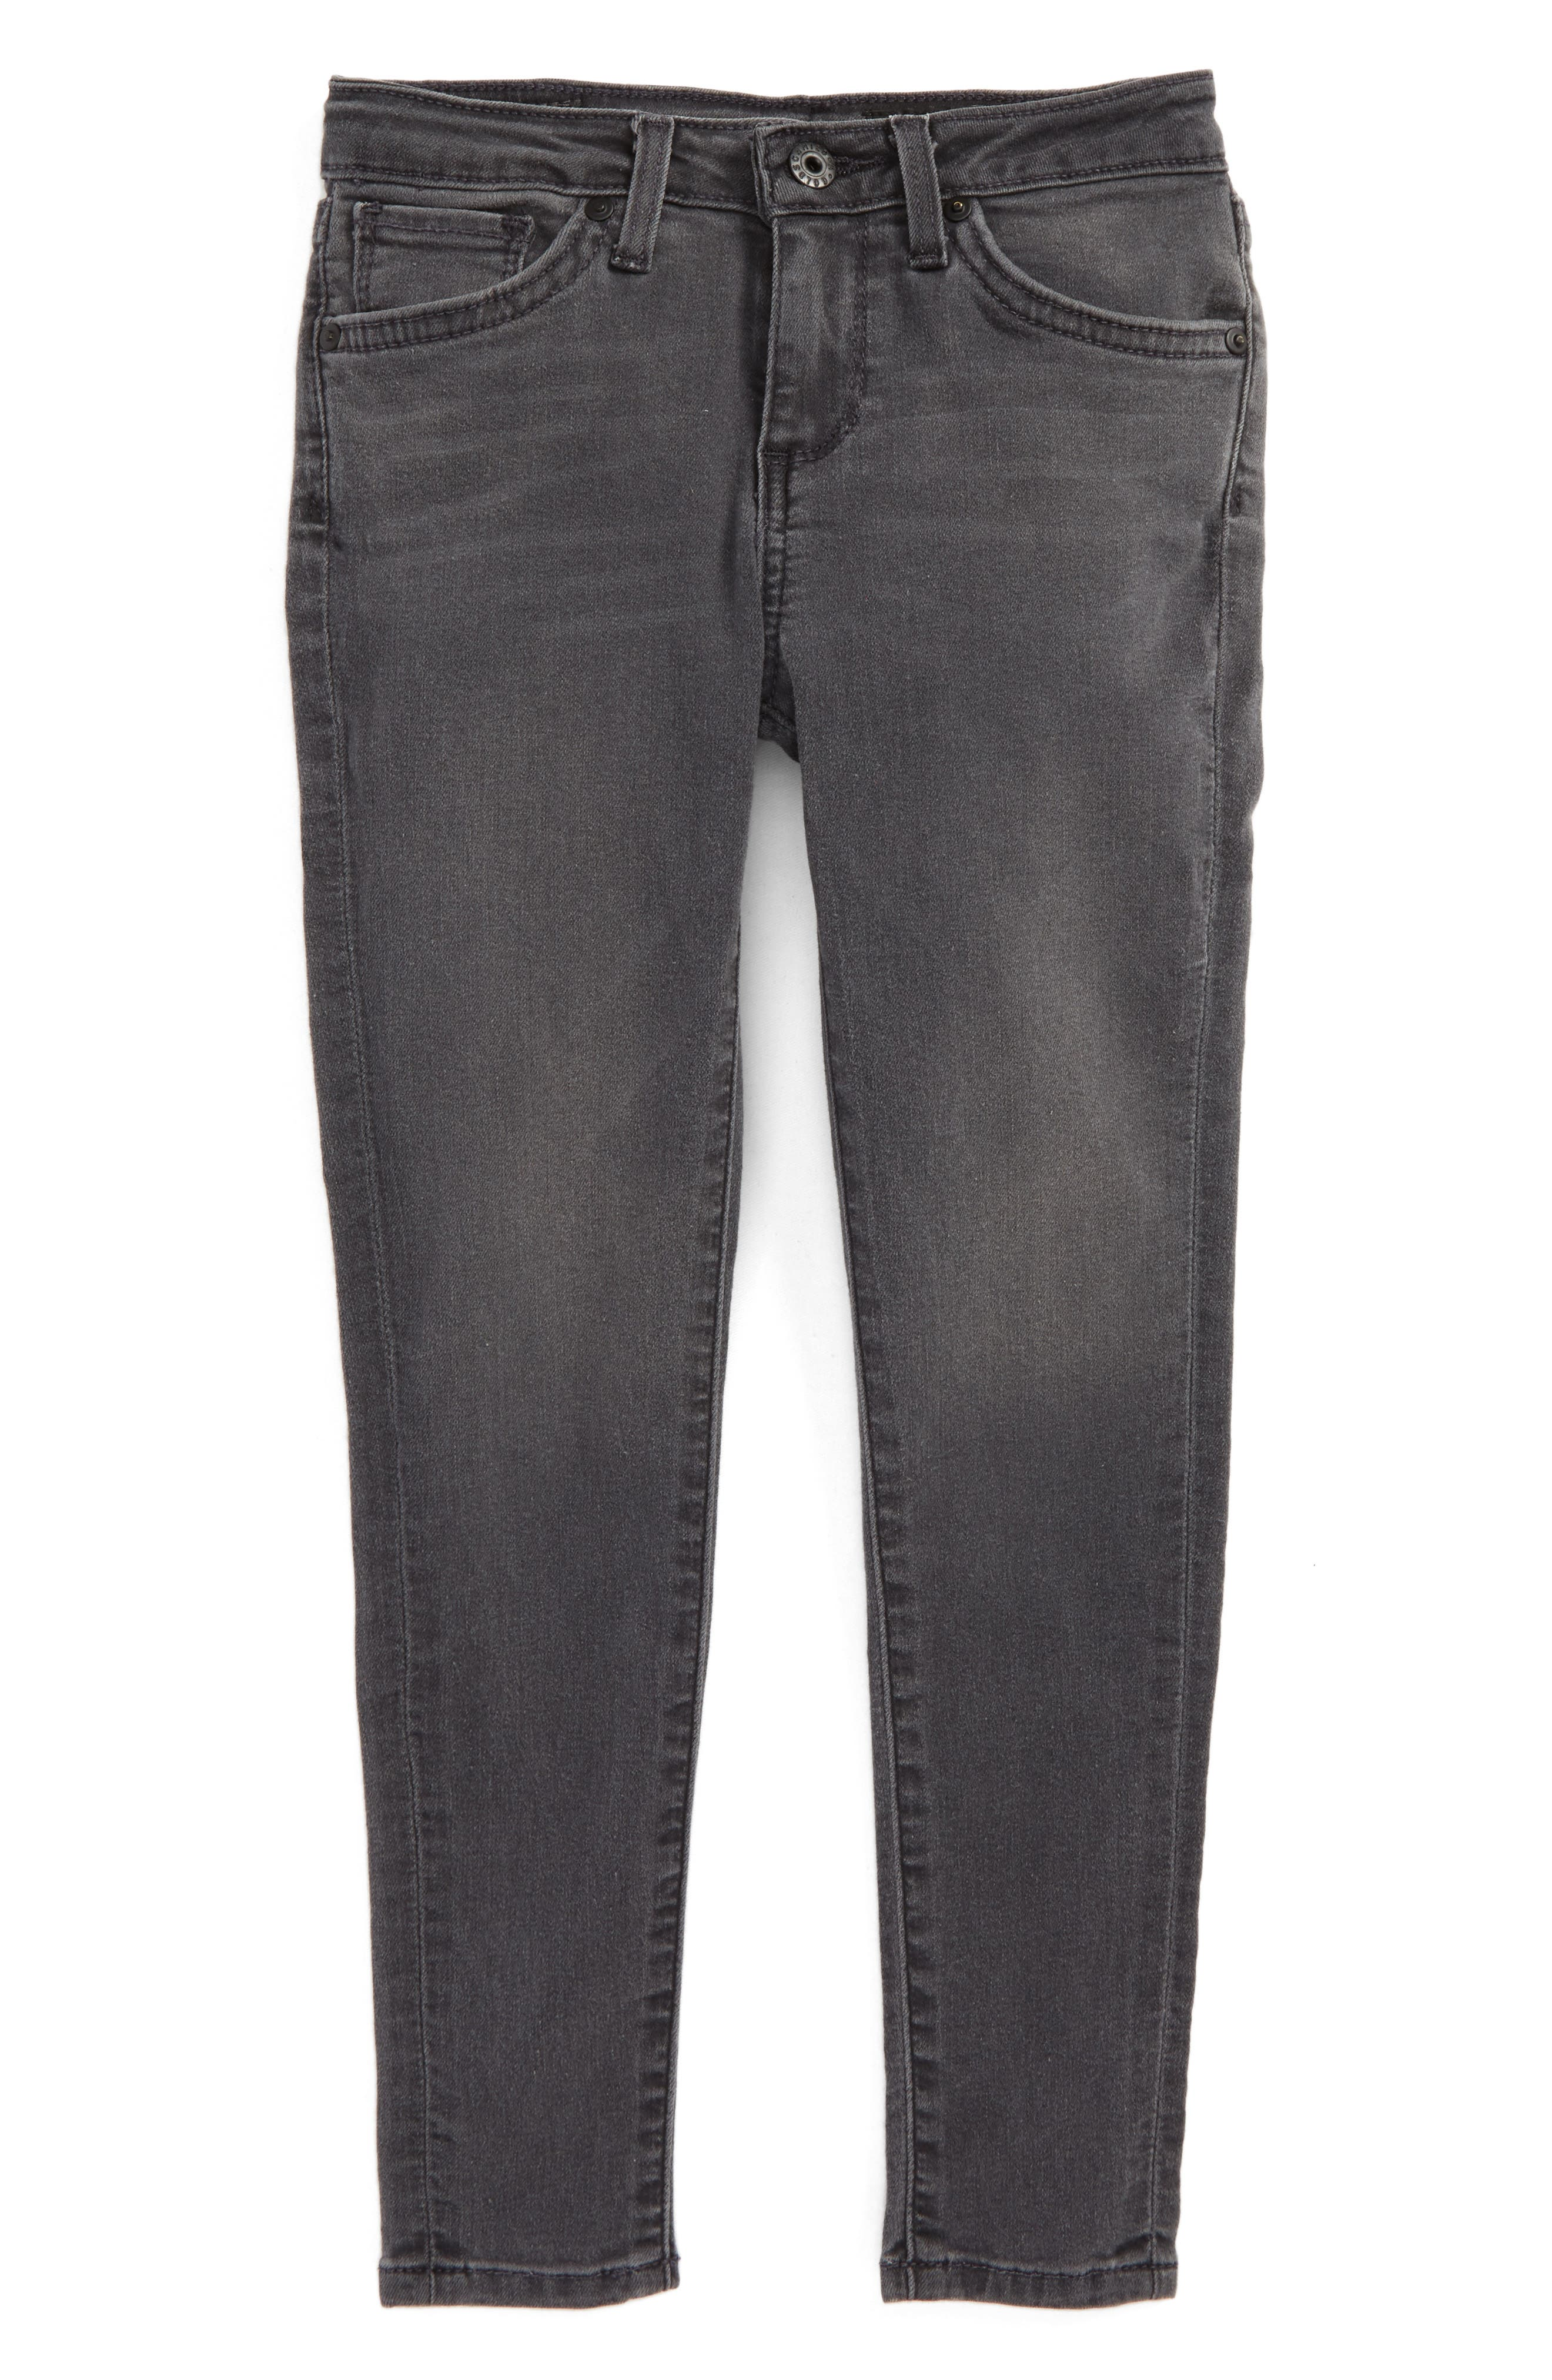 Main Image - ag adriano goldschmied kids Twiggy Skinny Ankle Jeans (Toddler Girls & Little Girls)